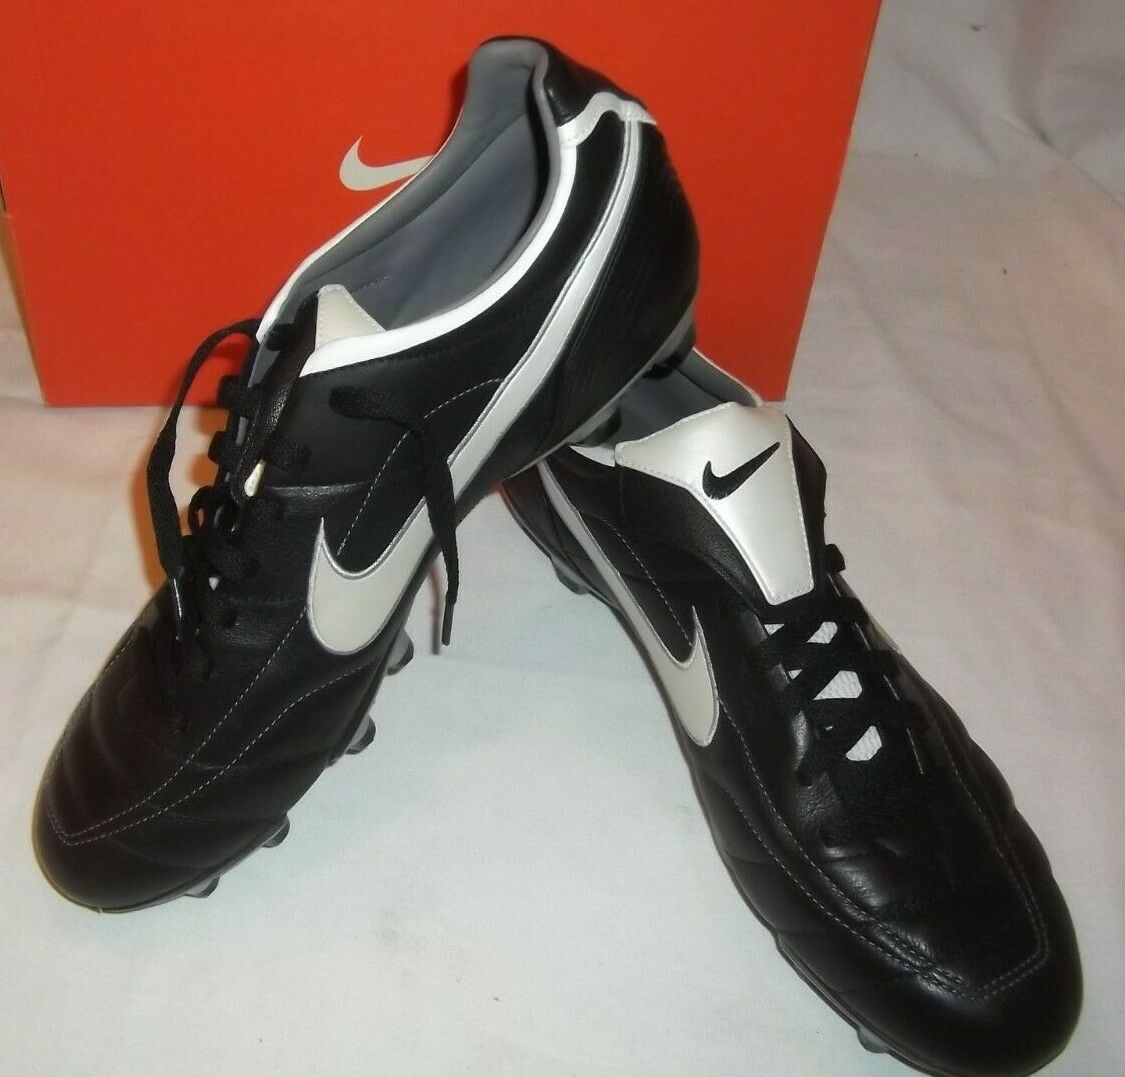 NIKE TIEMPO MYSTIC FG MENS SOCCER CLEATS NEW SIZES 12 12.5